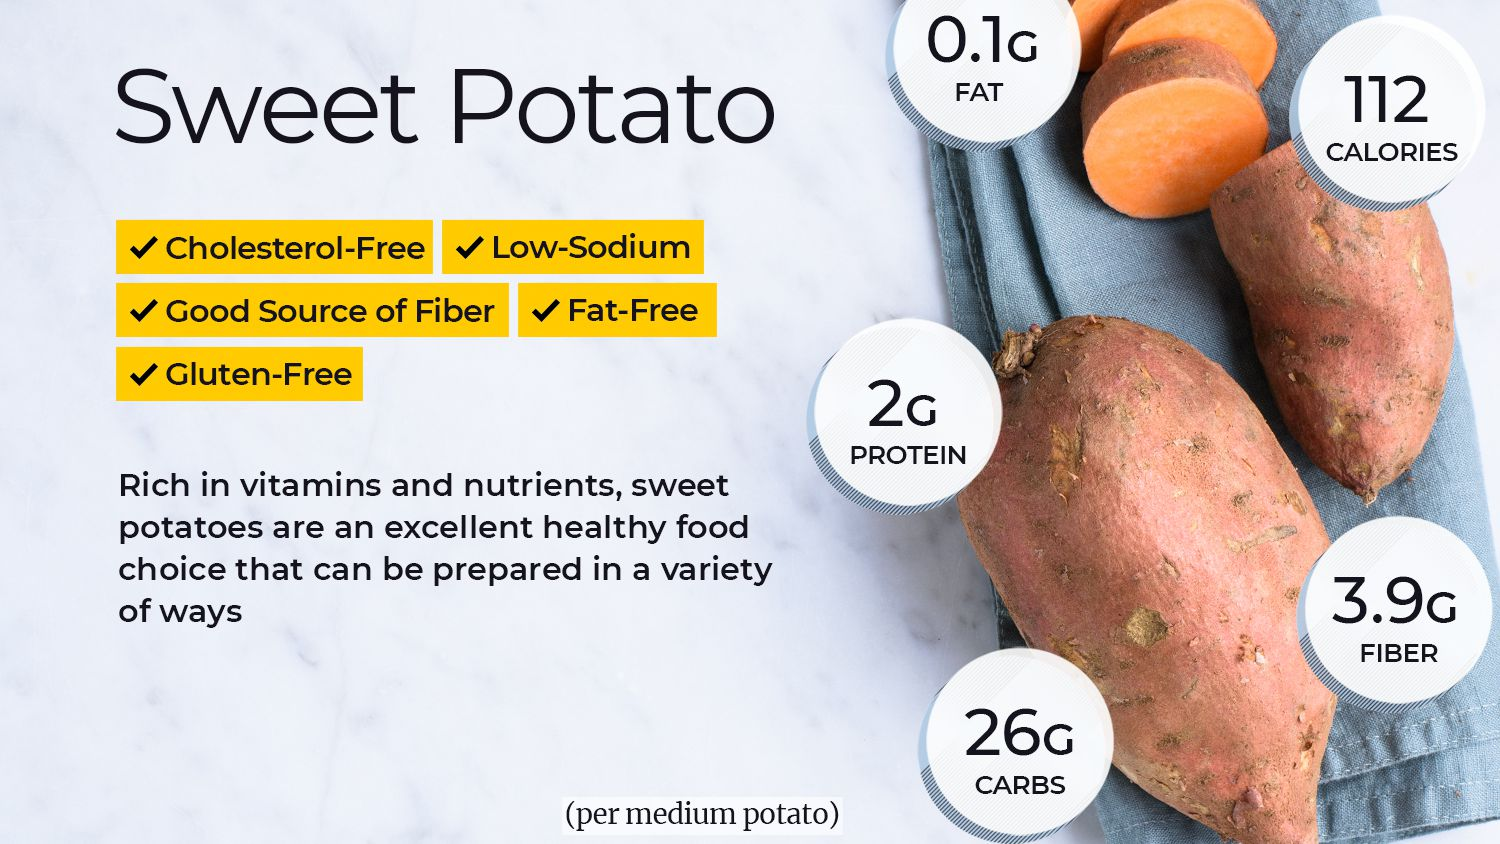 Sweet Potato Nutrition Facts